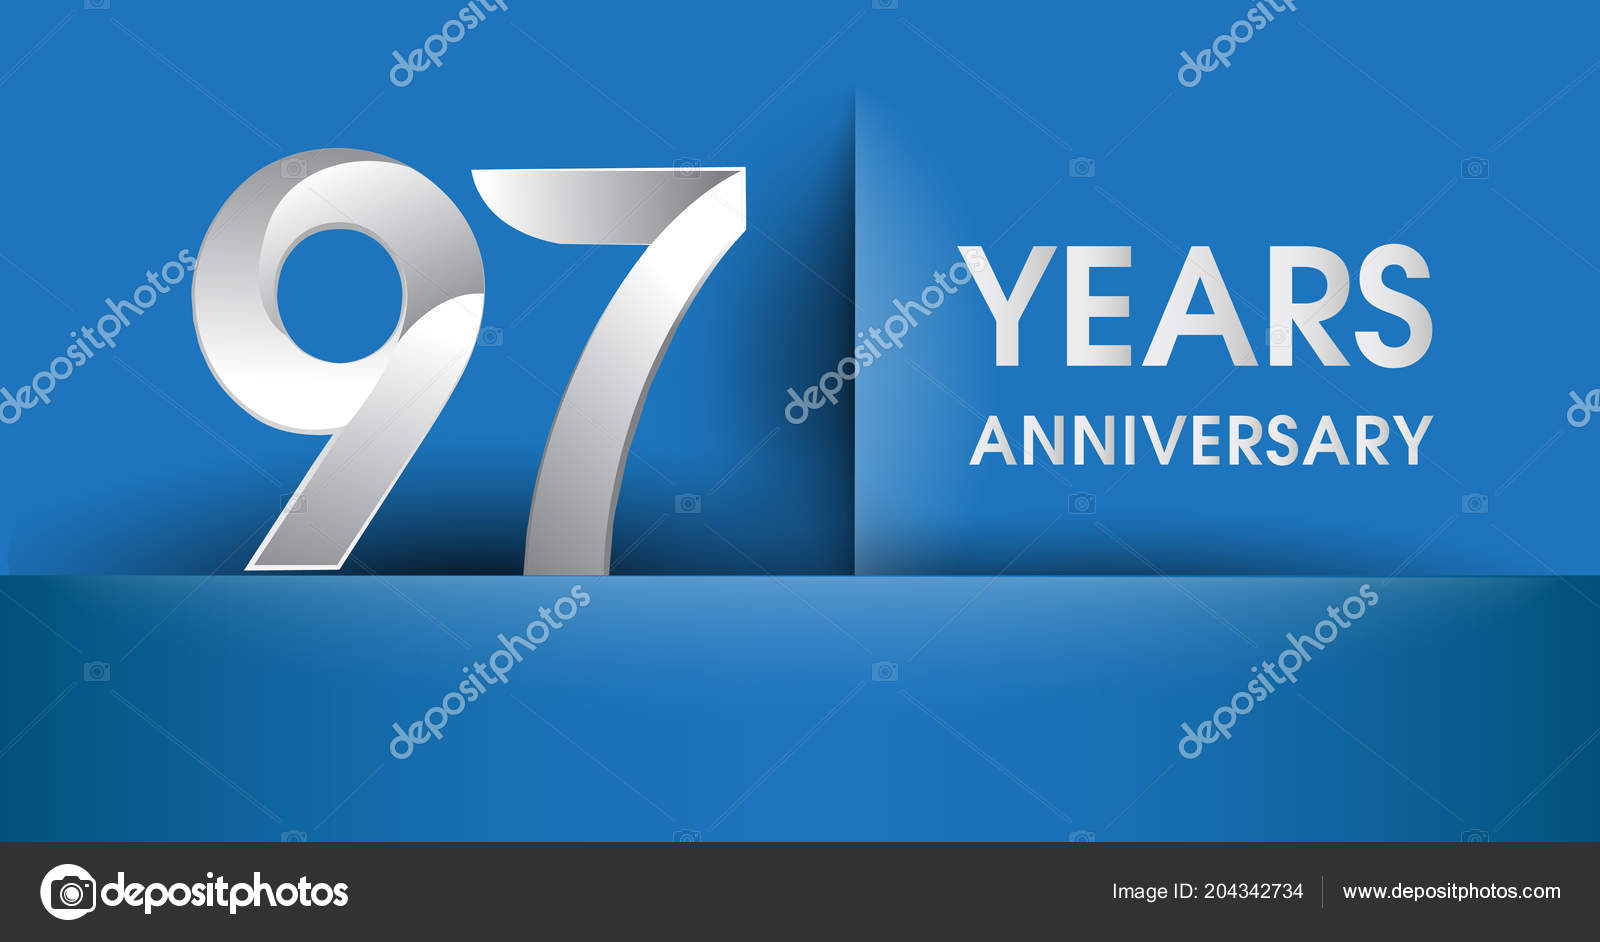 years anniversary logo blue vector design template elements your